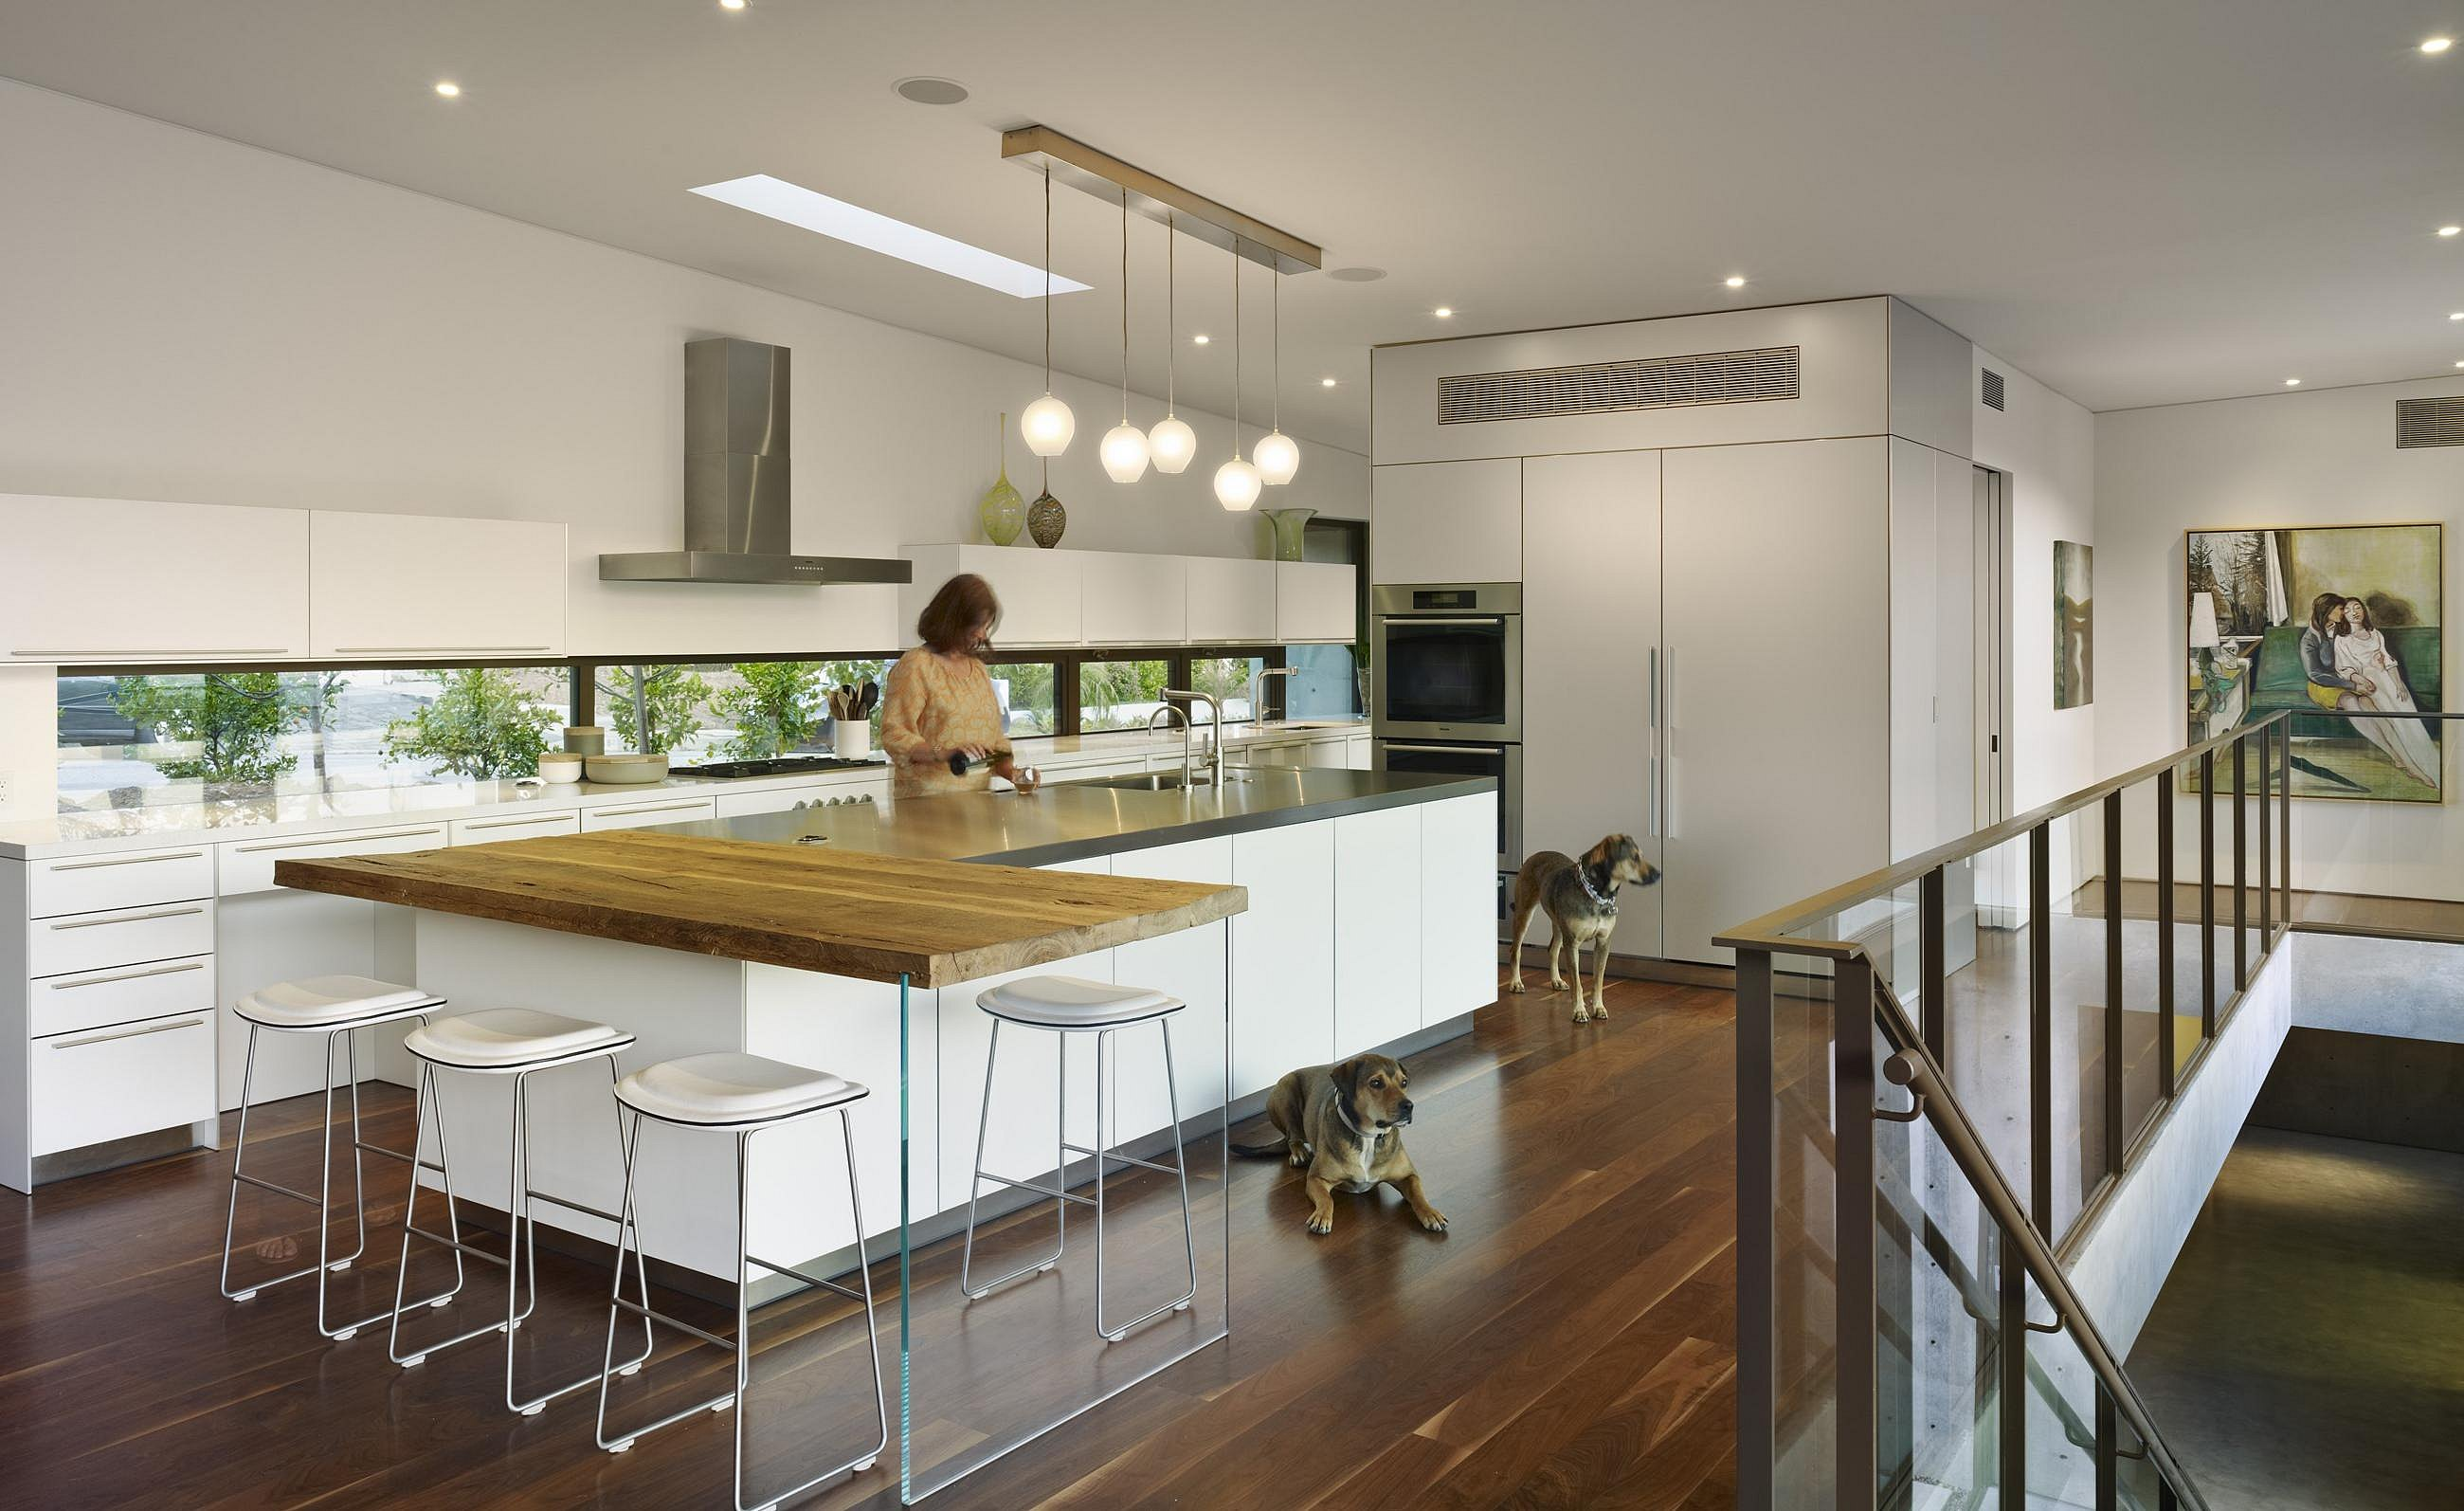 b3 kitchen in alpine white laminate, natural aluminum and stainless steel.